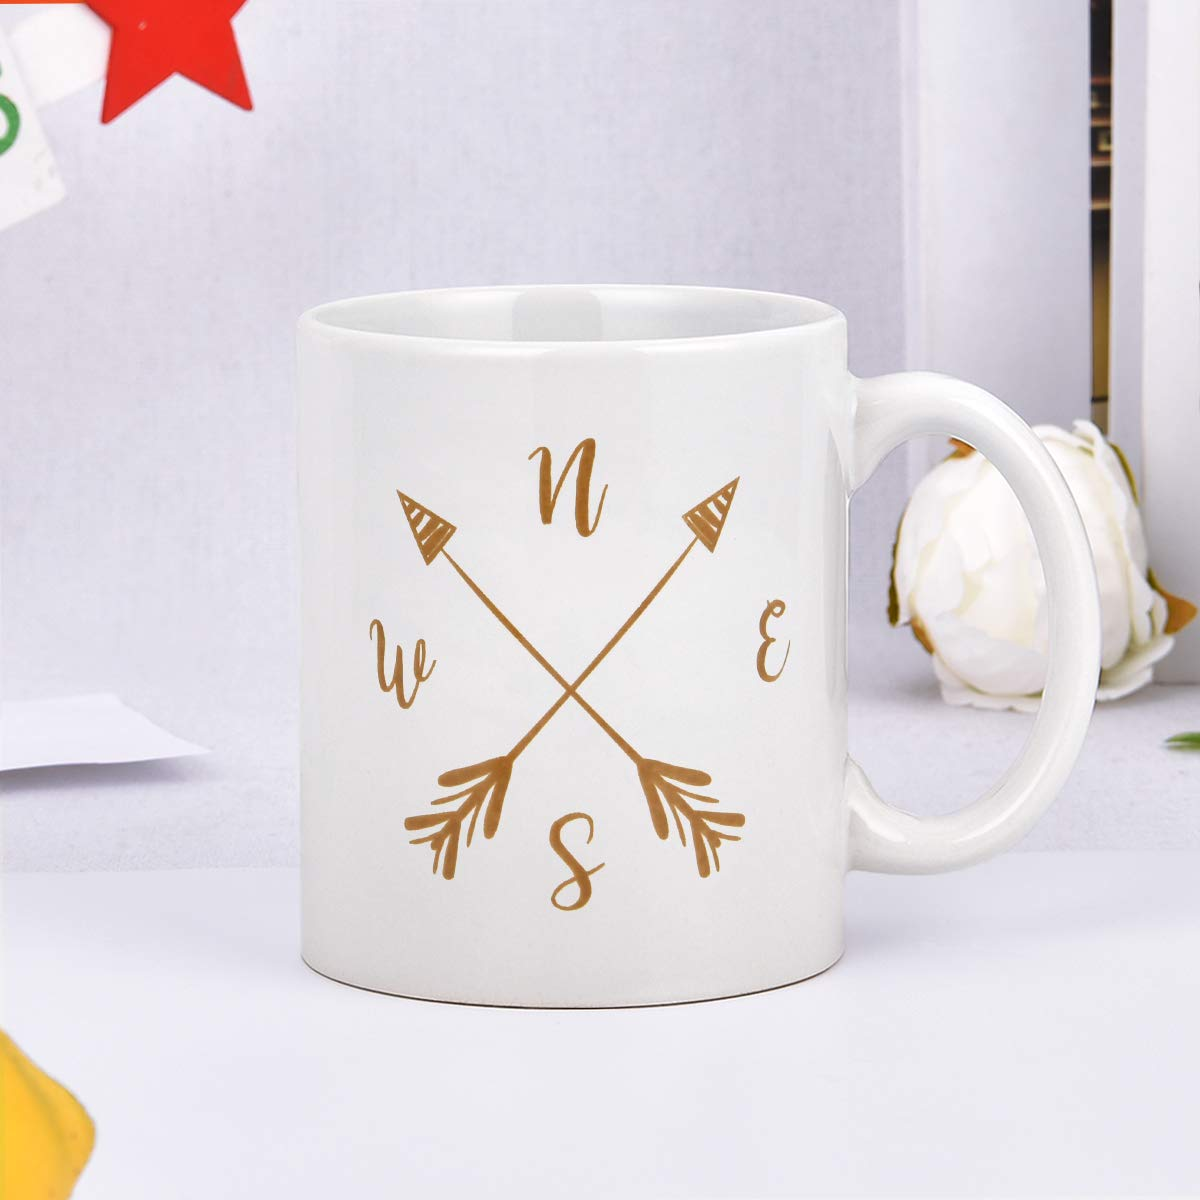 11 Oz Funny Photographer Coffee Mug Gifts Coffee Mug Funny Photographer Coffee Mug Gifts I Shoot People and Sometimes Cut Off Their Heads Unique Gag Gifts for Photography Lover Ceramic Cup White